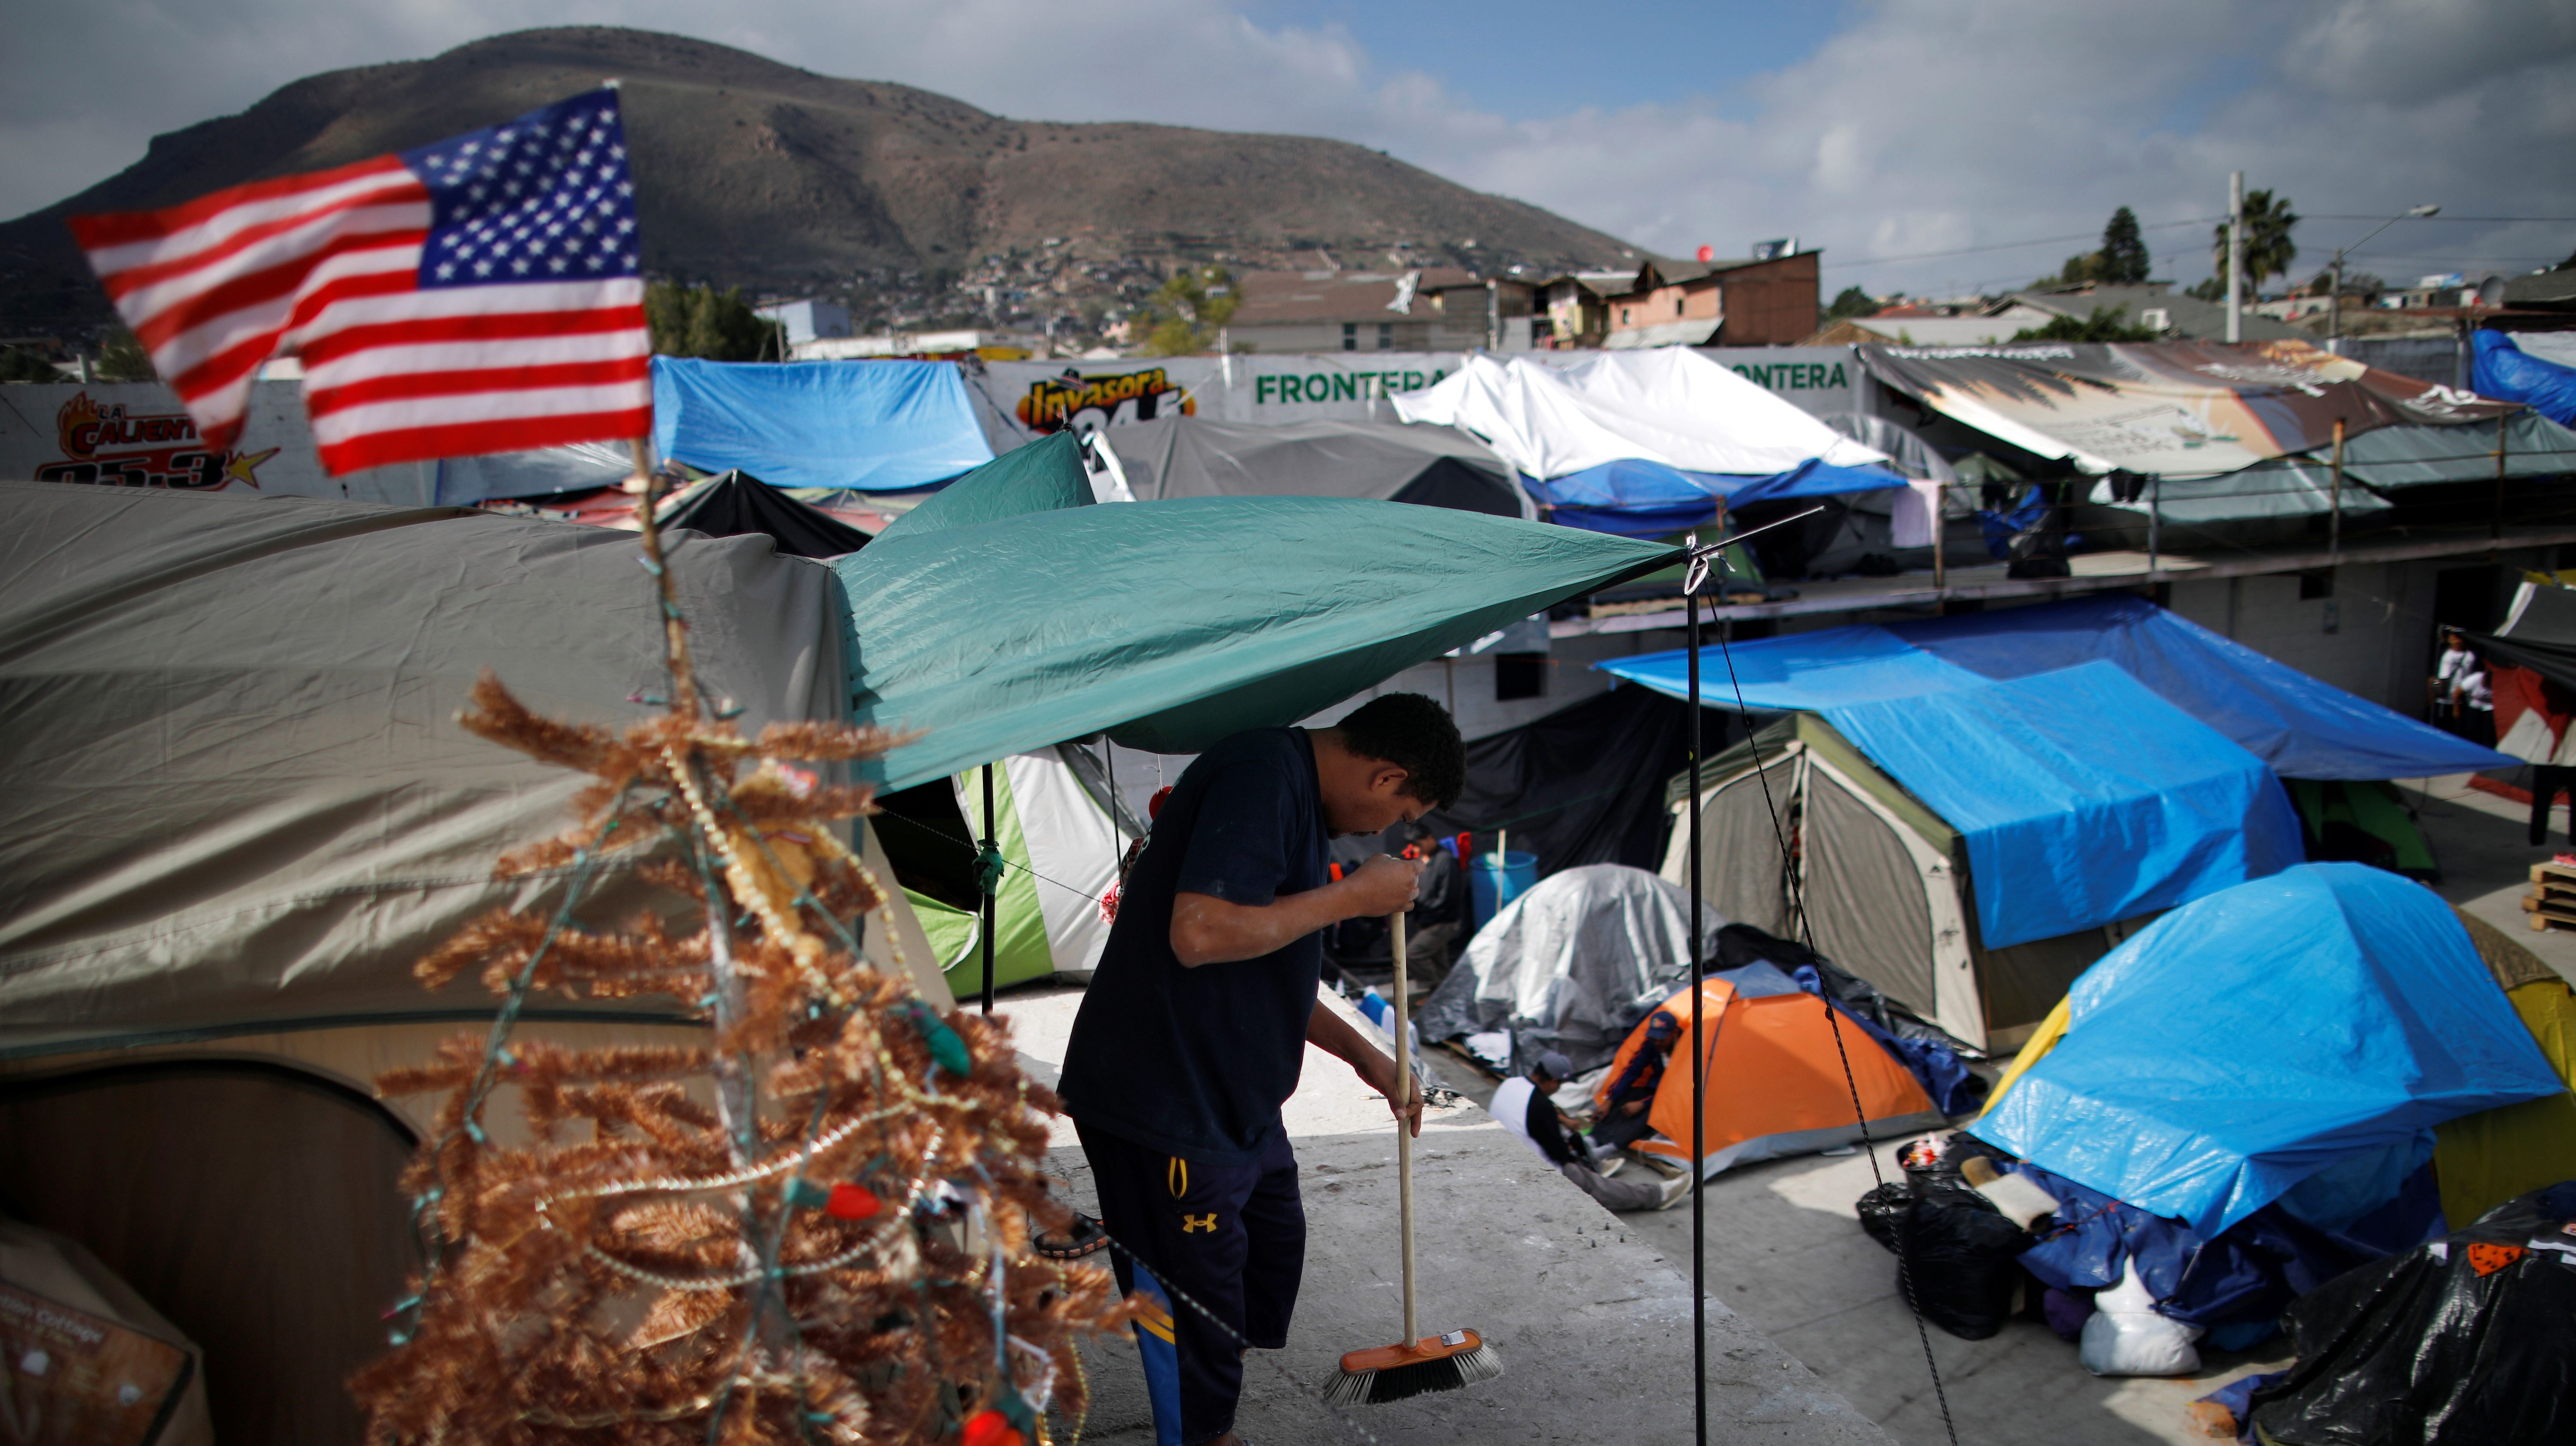 A U.S. flag and a Christmas tree are seen as Jose Calderon, part of a caravan of thousands from Central America trying to reach the United States, cleans the front of his tent at a temporary shelter in Tijuana, Mexico